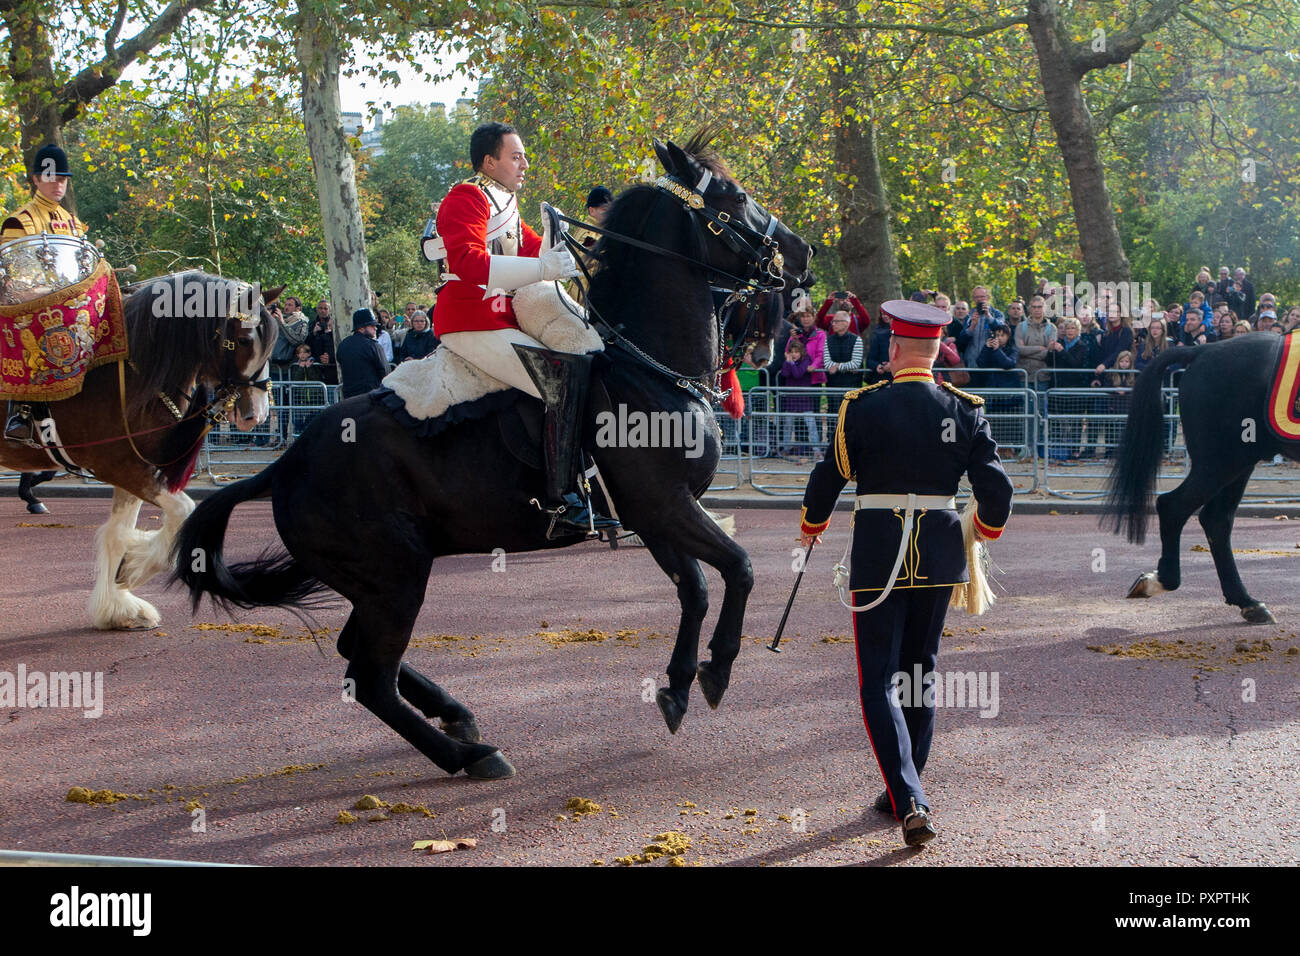 A Bucking Horse Makes Riding Difficult For A Guard At The King And Queen Of Holland S State Visit To The Uk Stock Photo Alamy